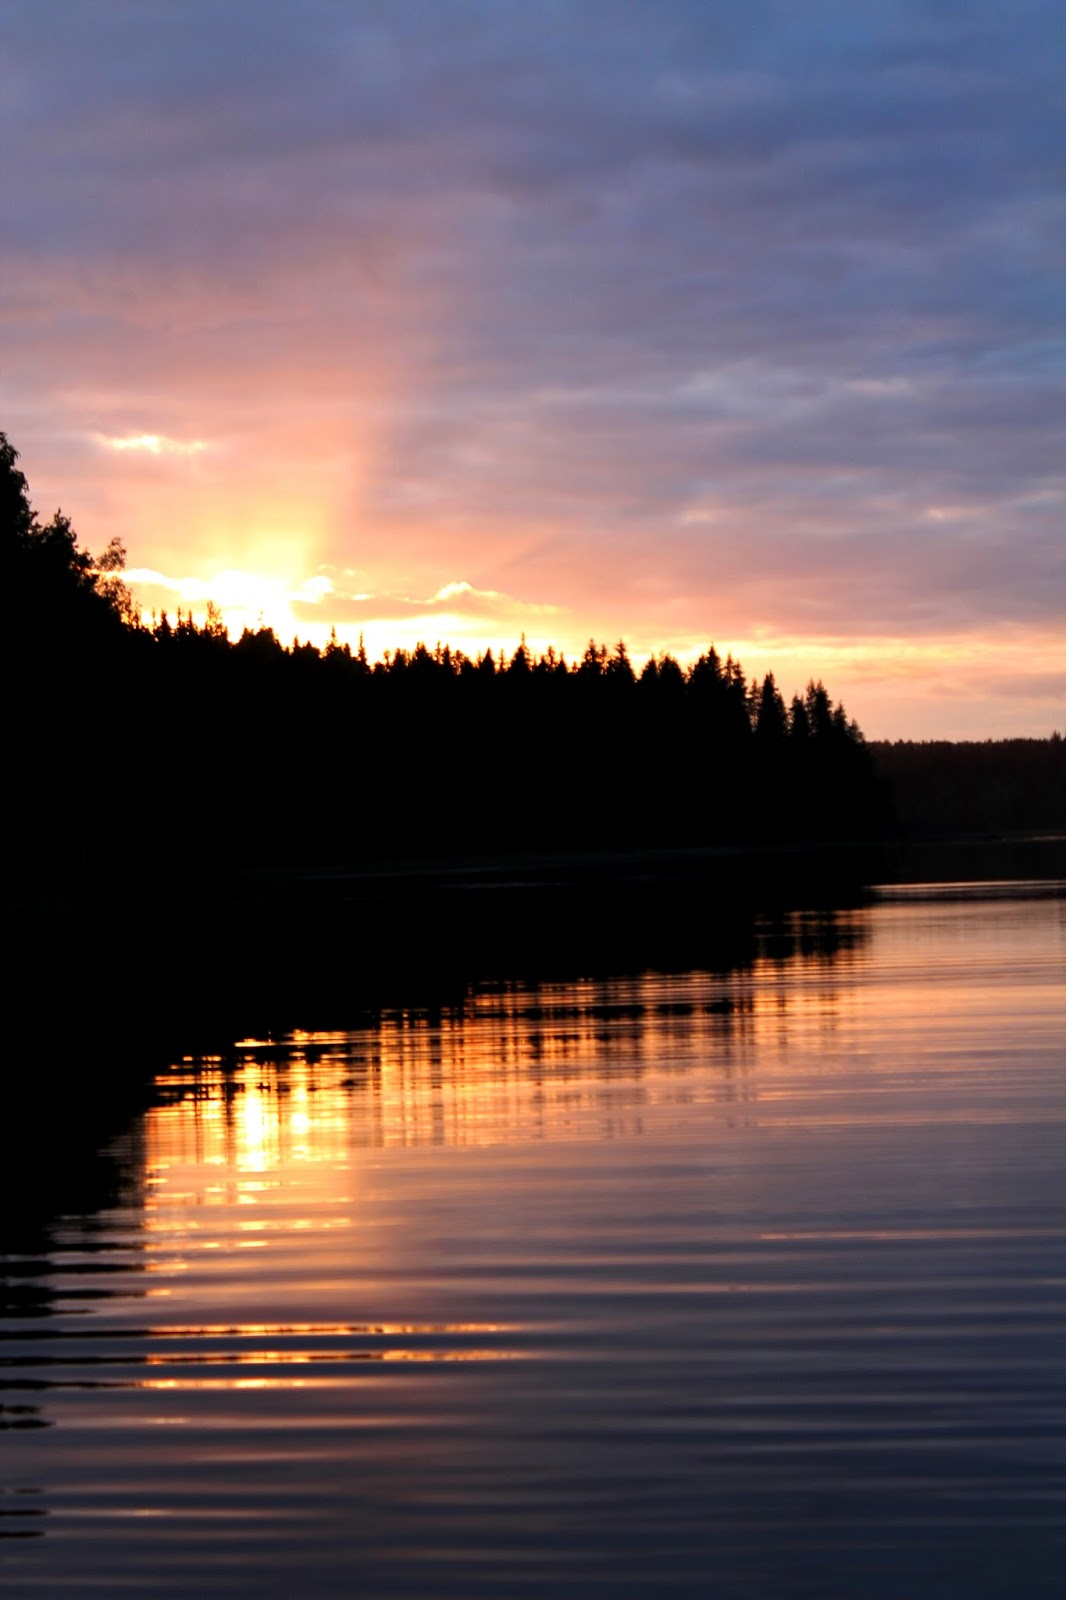 #visitfinland #finland #lakesaimaa #saimaa #lake #sun #sunset #photography #amazing